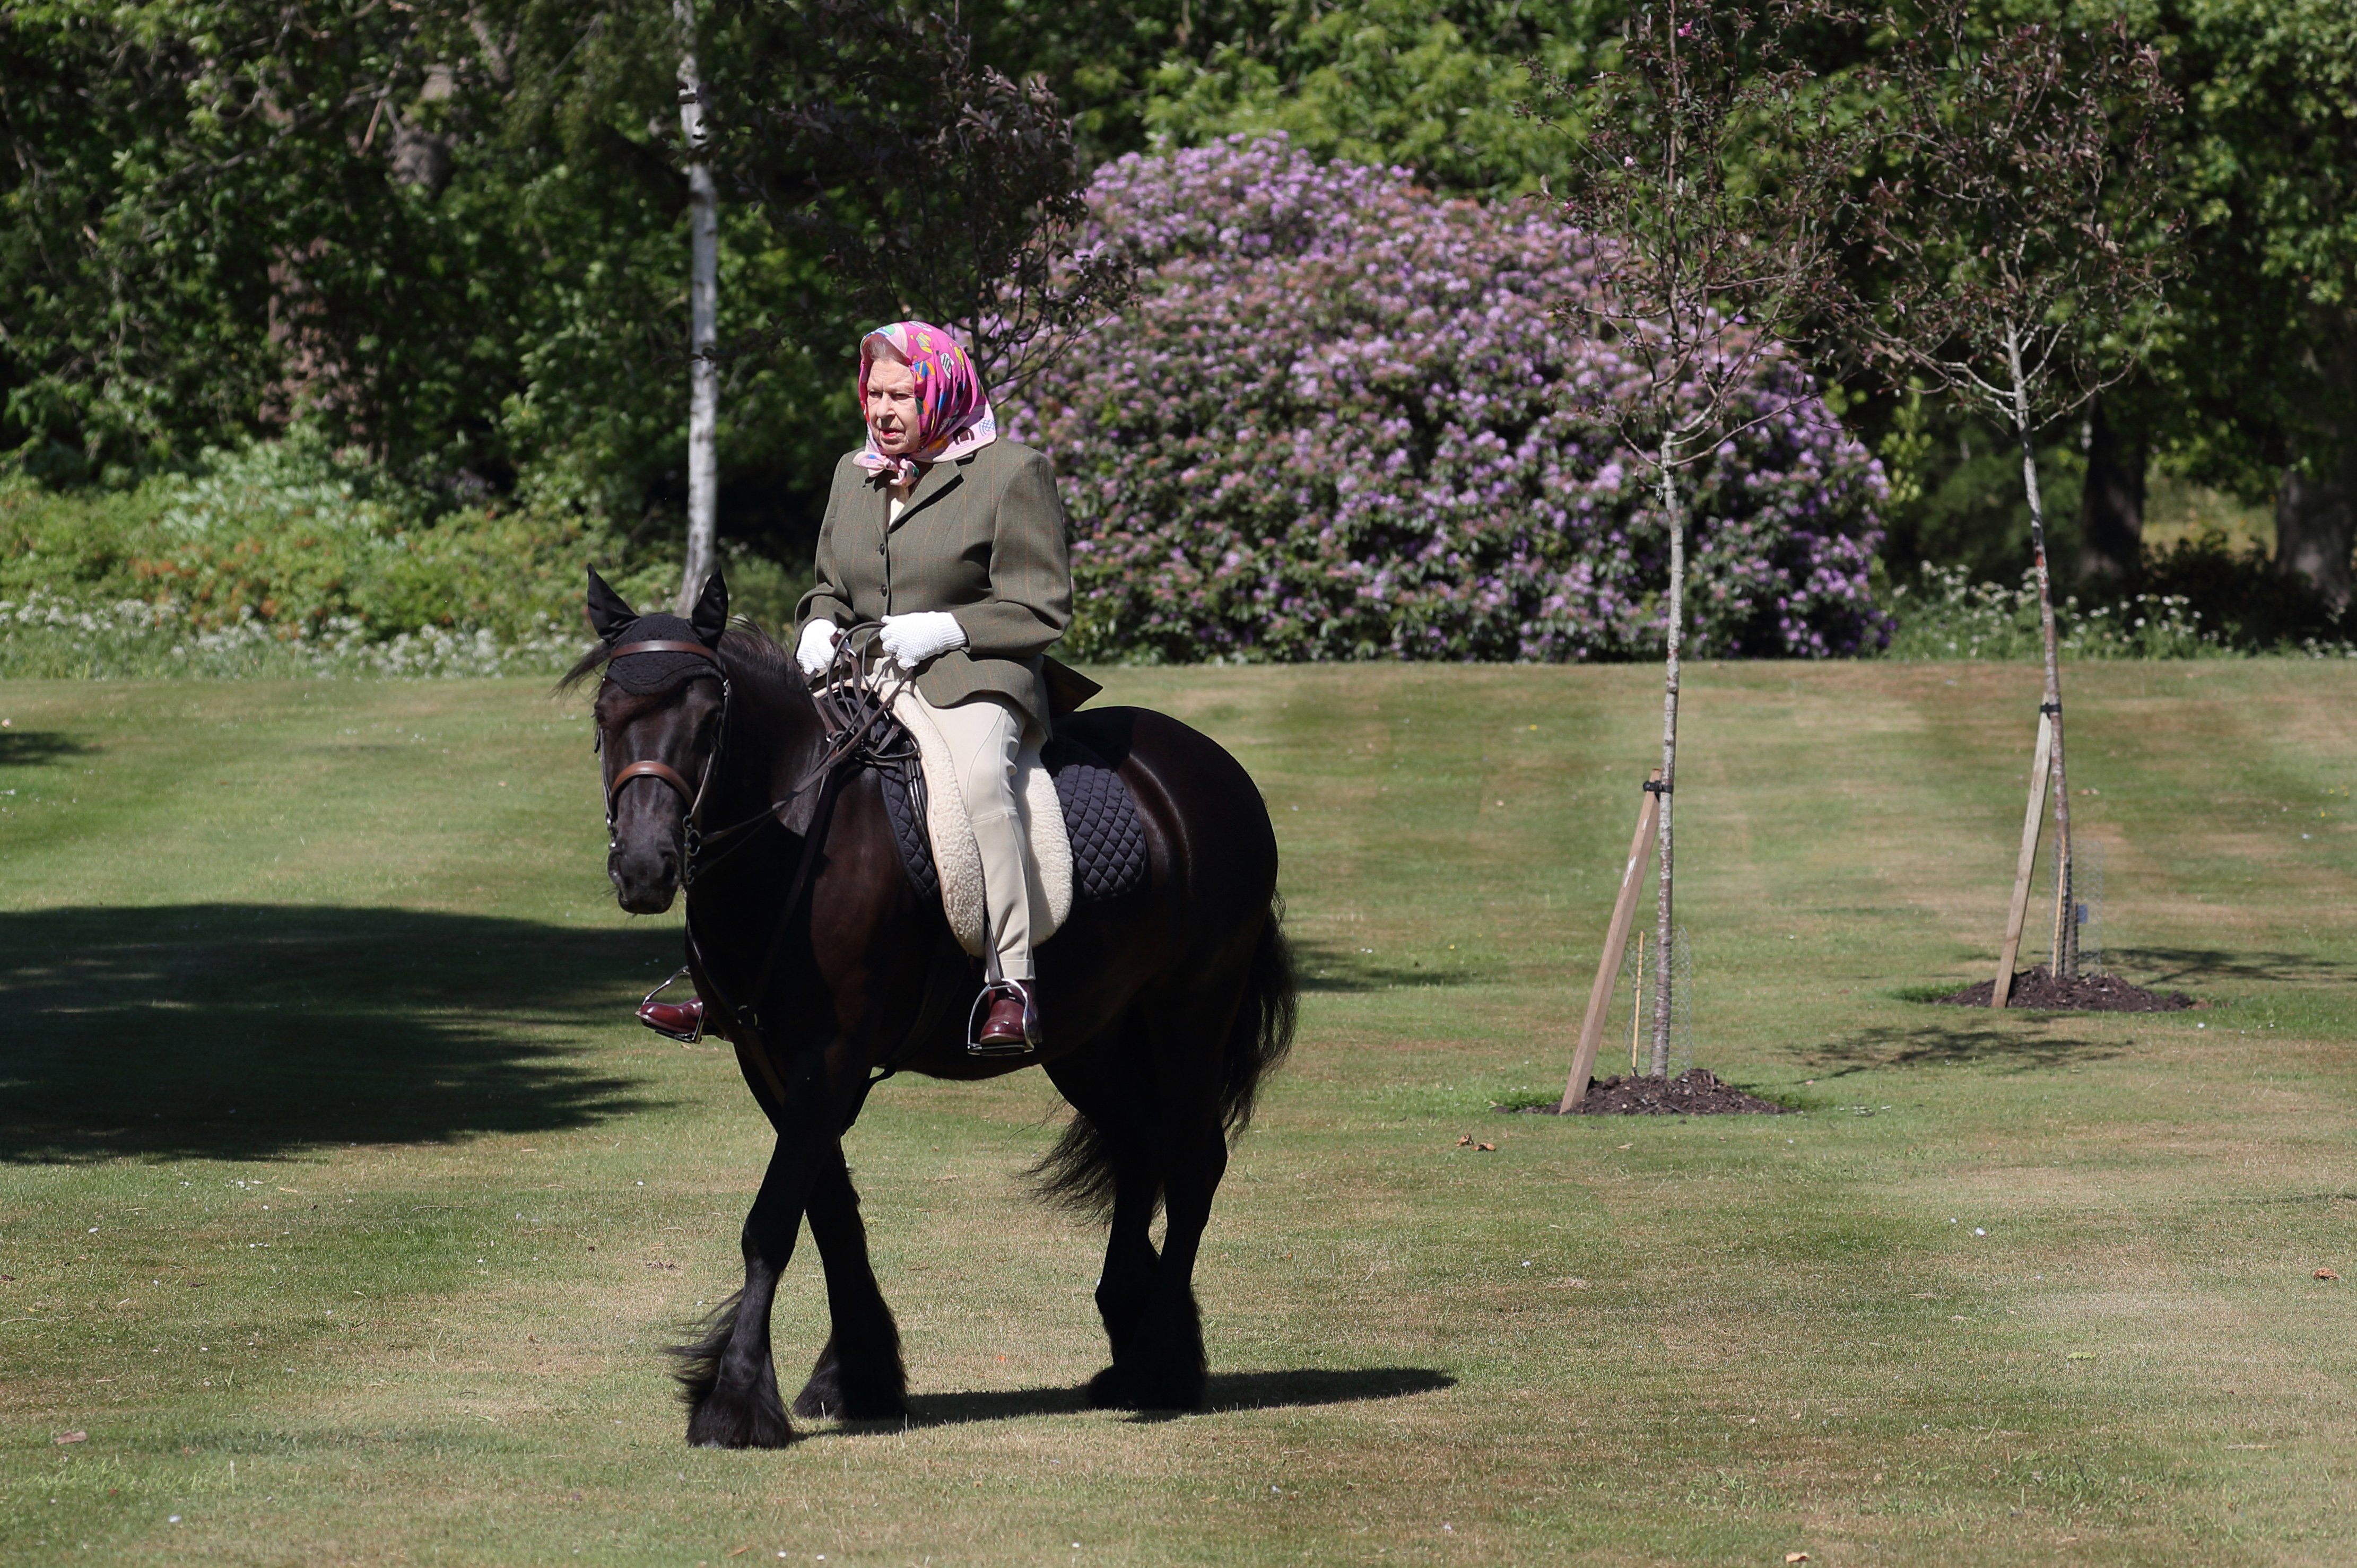 Queen Elizabeth II rides Balmoral Fern, a 14-year-old Fell Pony, in Windsor Home Park over the weekend of May 30 and May 31, 2020, in Windsor, England. | Source: Getty Images.